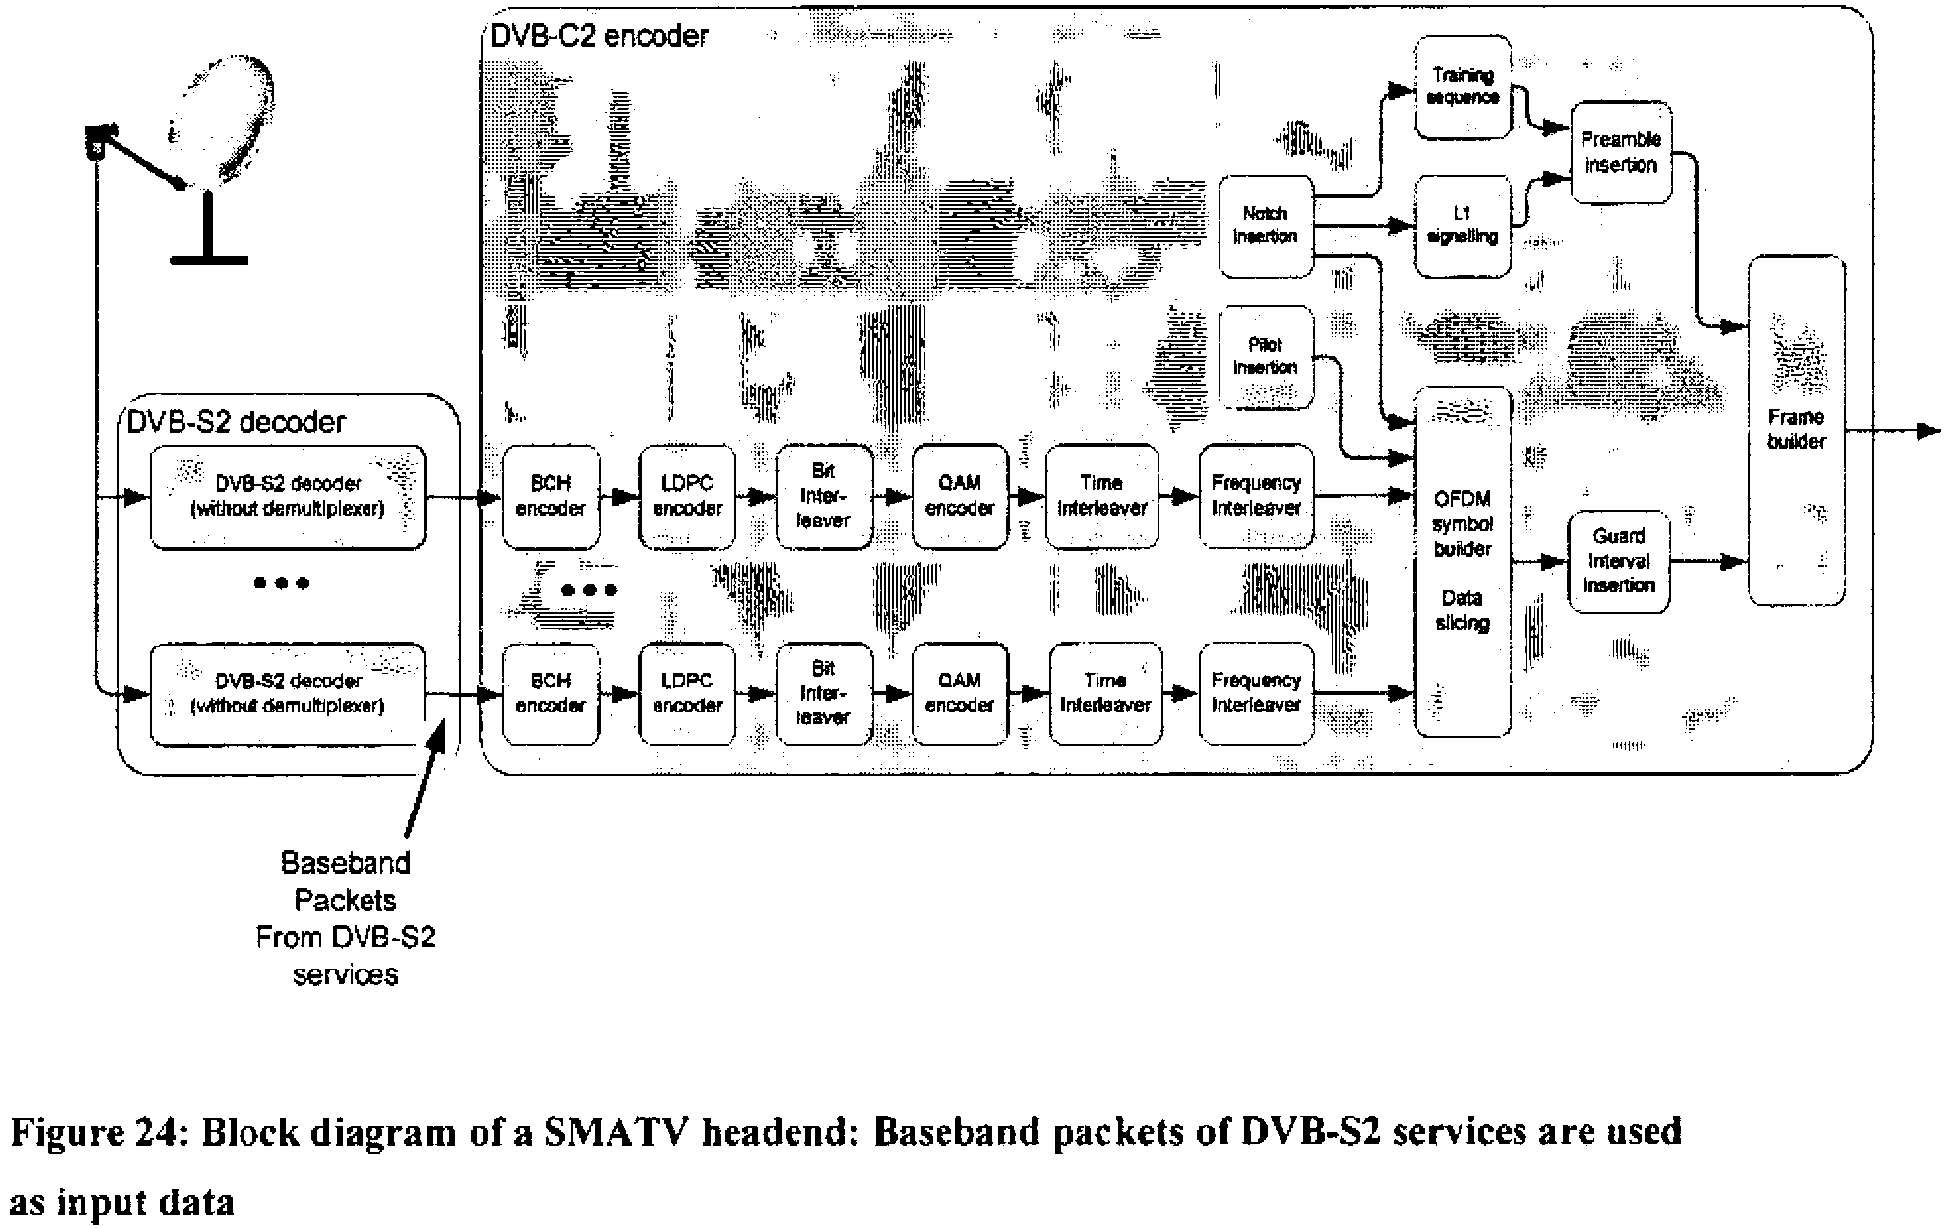 These baseband packets are then inserted directly into the proposed C2  system. Figure 24 shows the related block diagram: